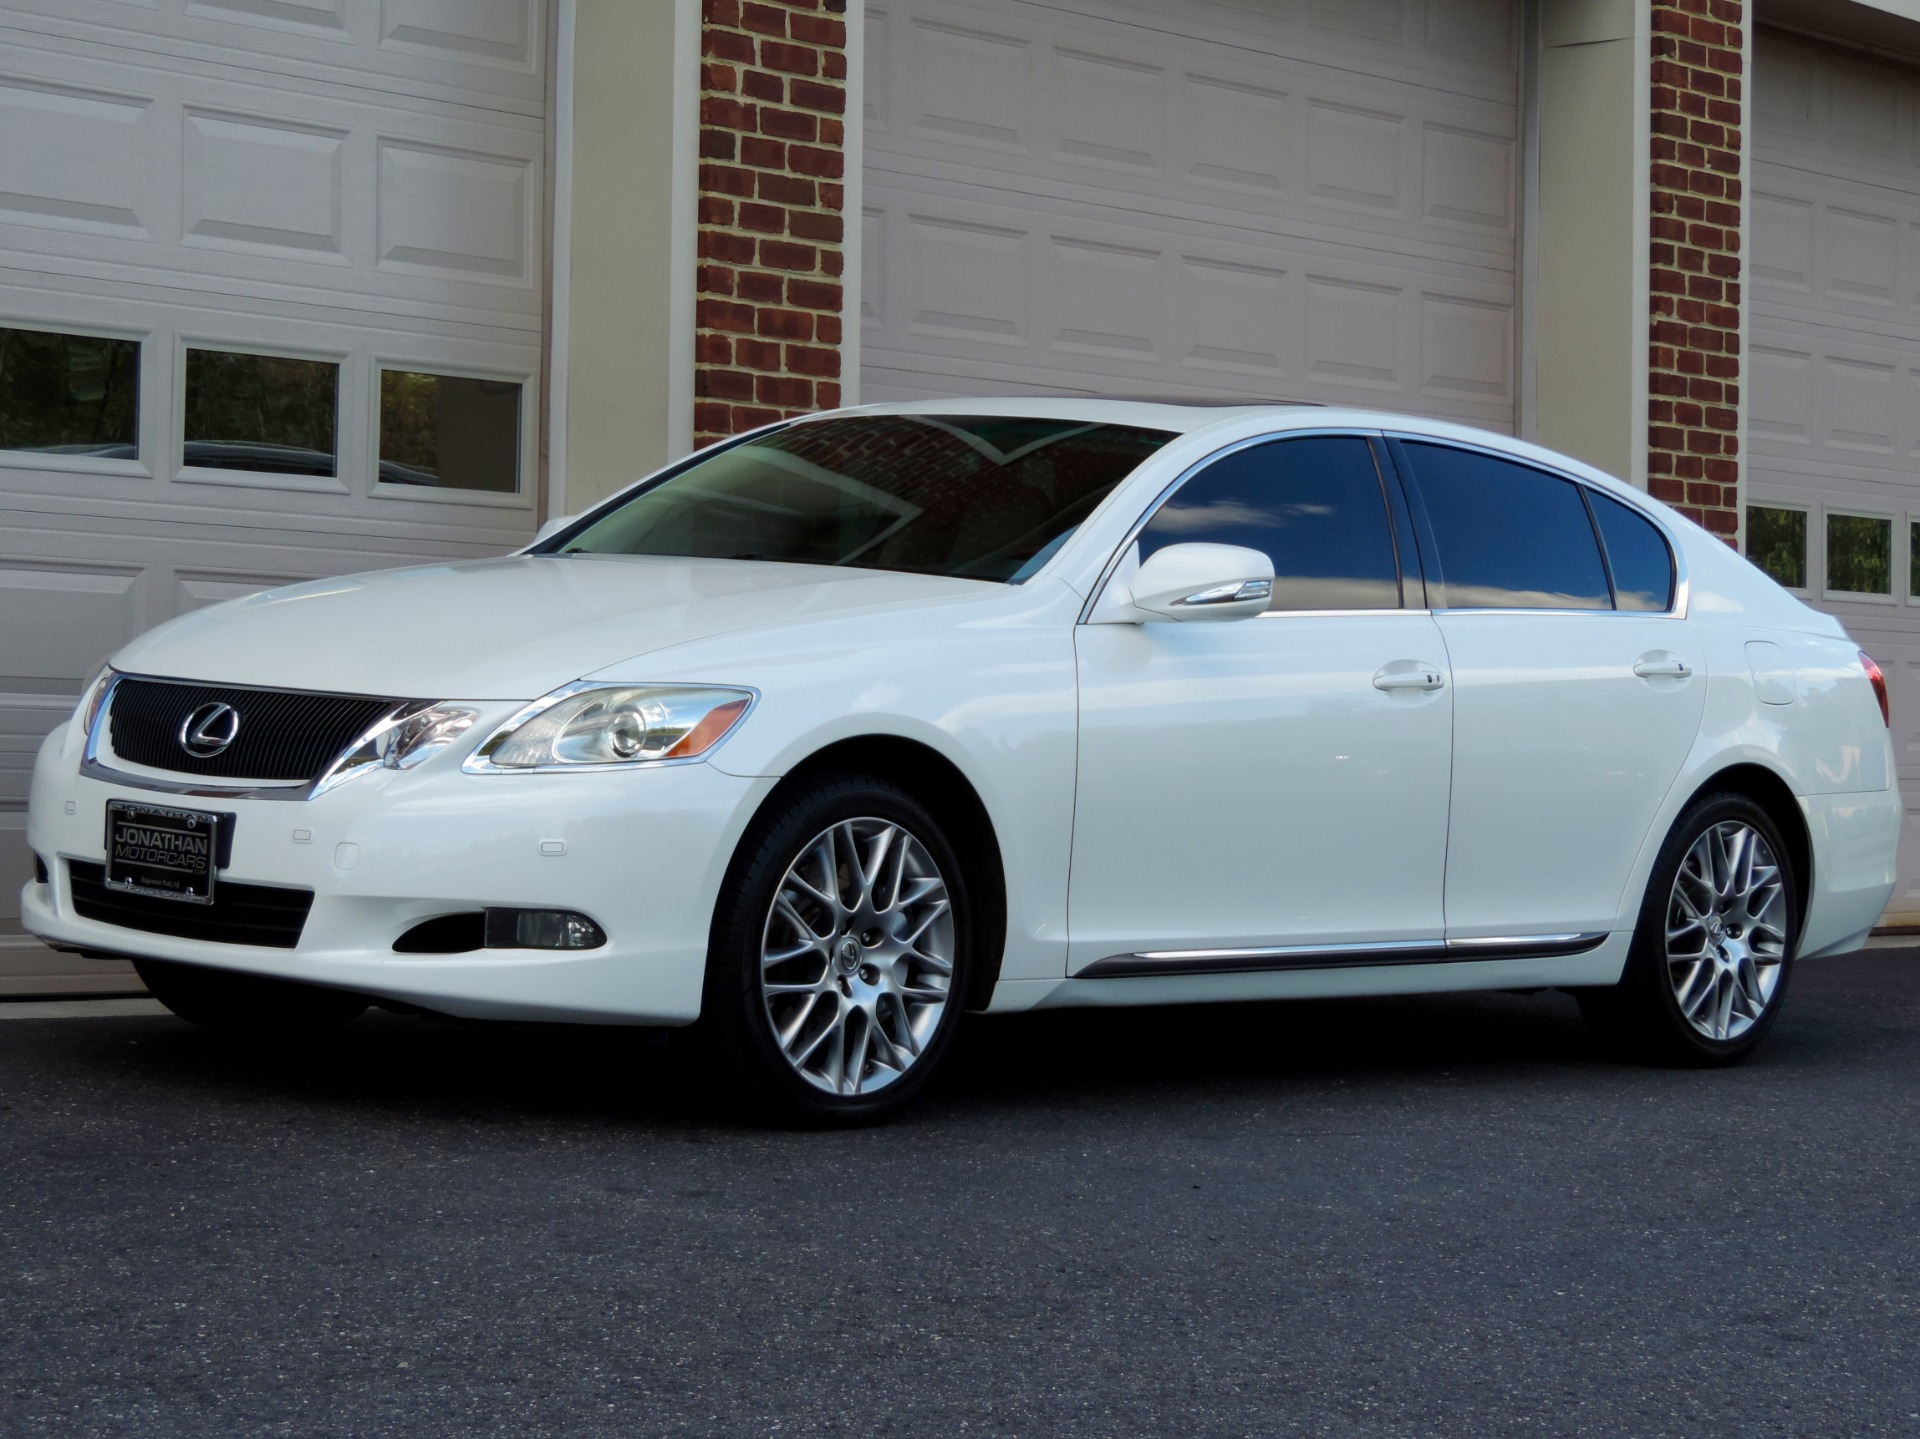 2008 lexus gs 350 stock 021074 for sale near edgewater. Black Bedroom Furniture Sets. Home Design Ideas